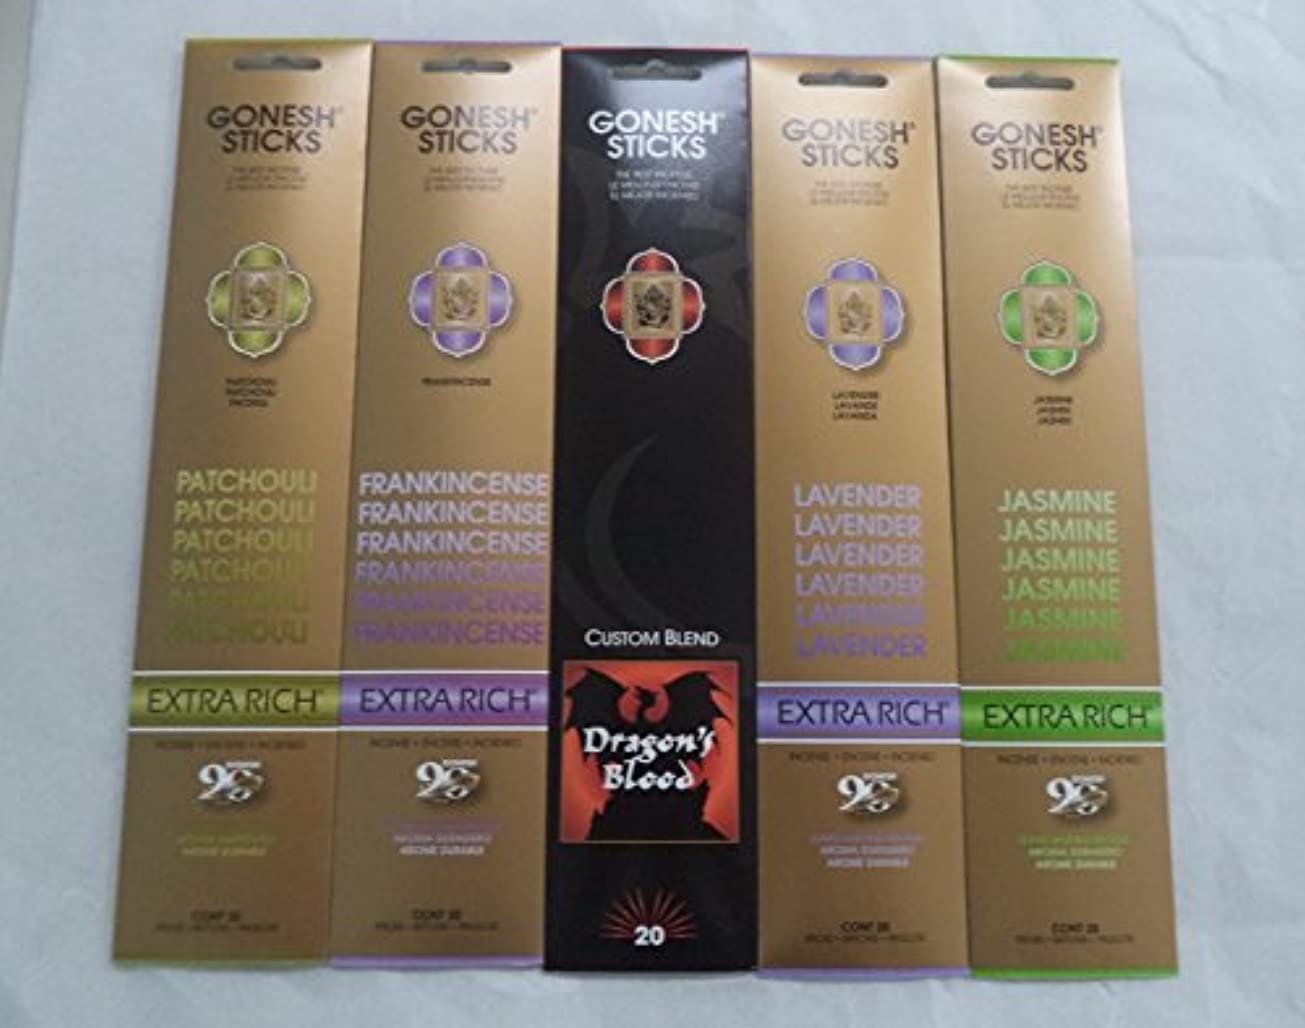 一般的なロマンチック見物人Gonesh Incense Stick Best SellerコンボVariety Set # 1 5 x 20 = 100 Sticks